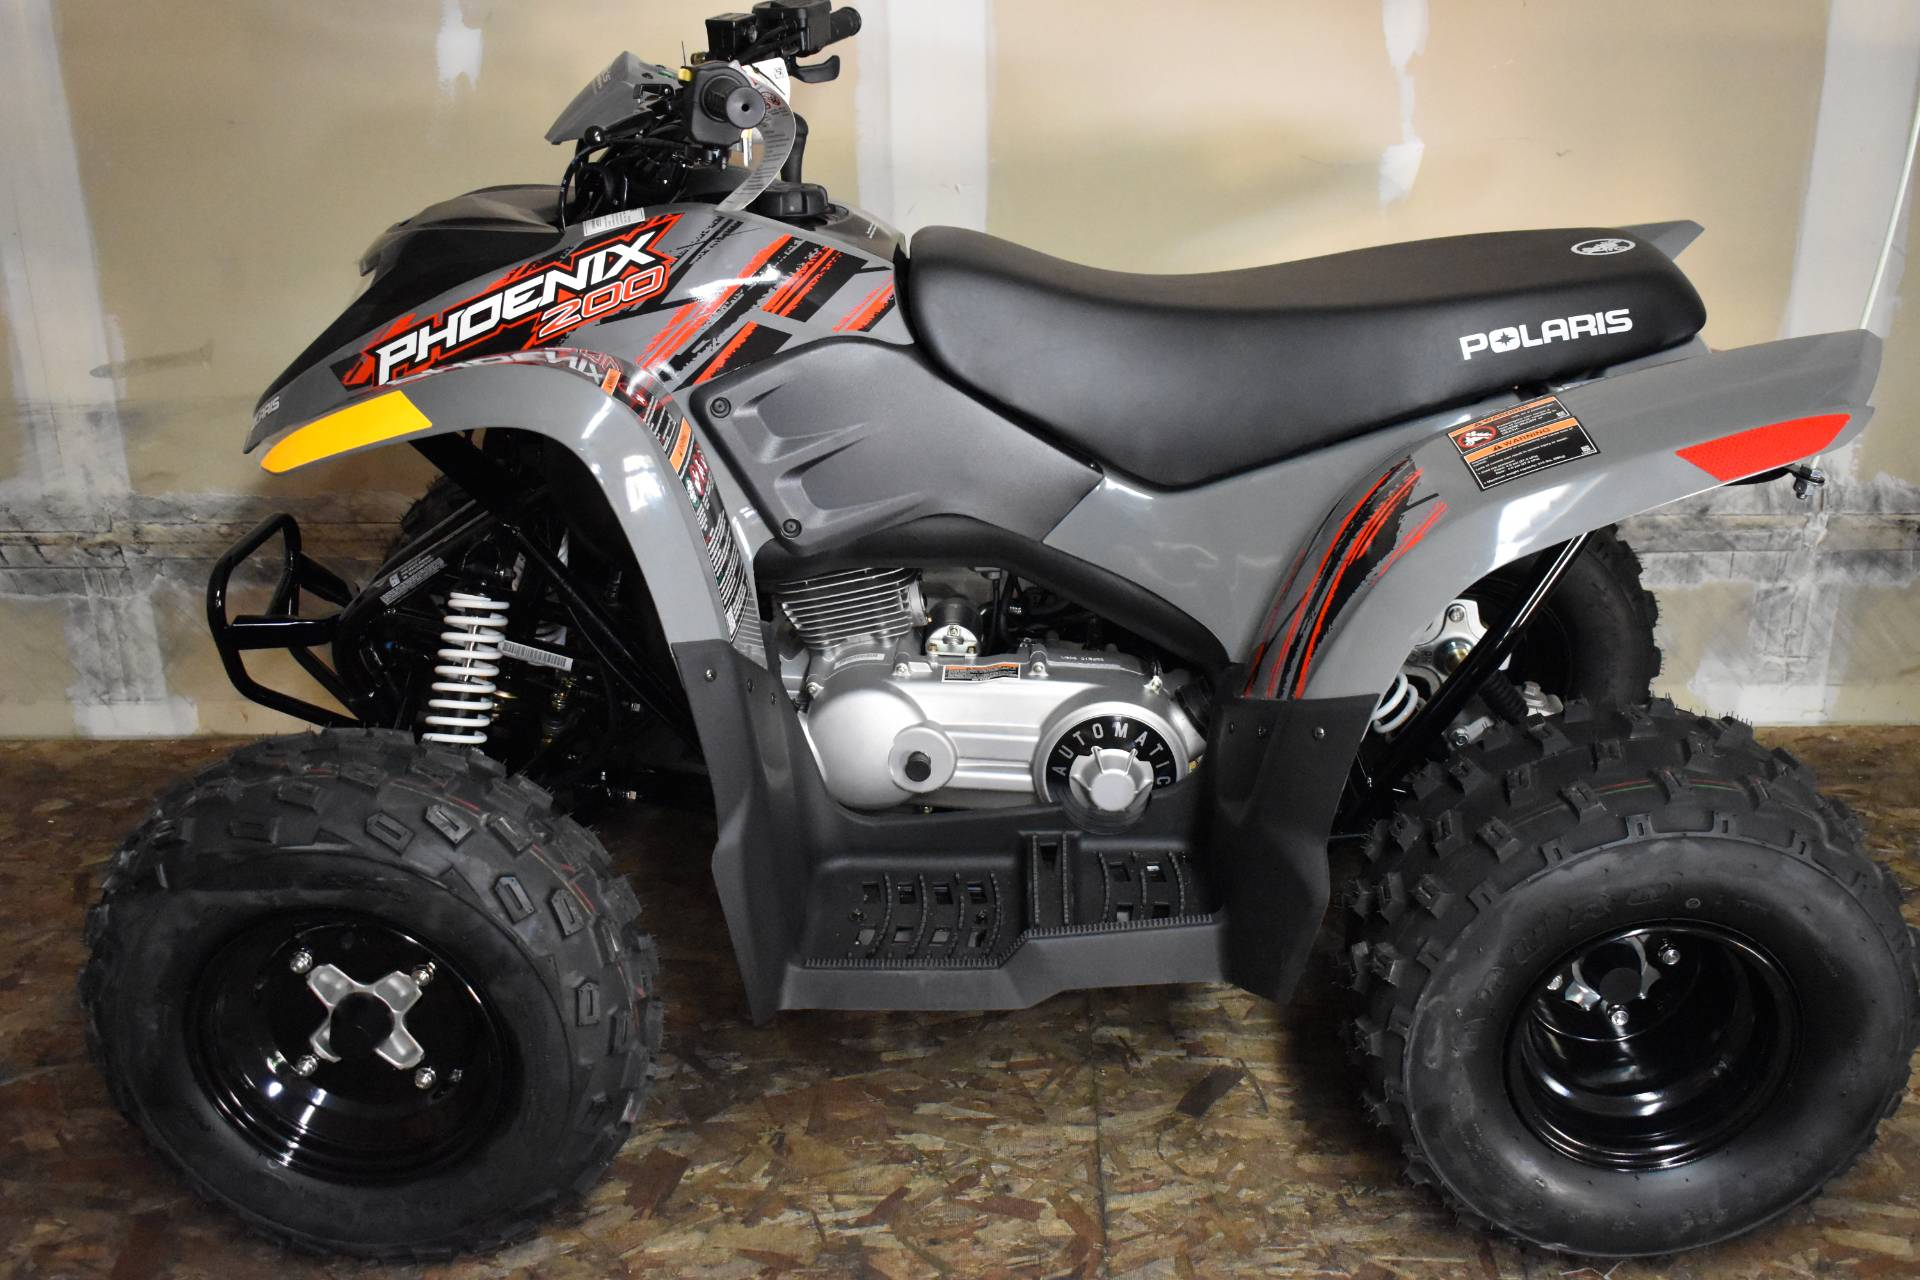 2019 Polaris Phoenix 200 in Boise, Idaho